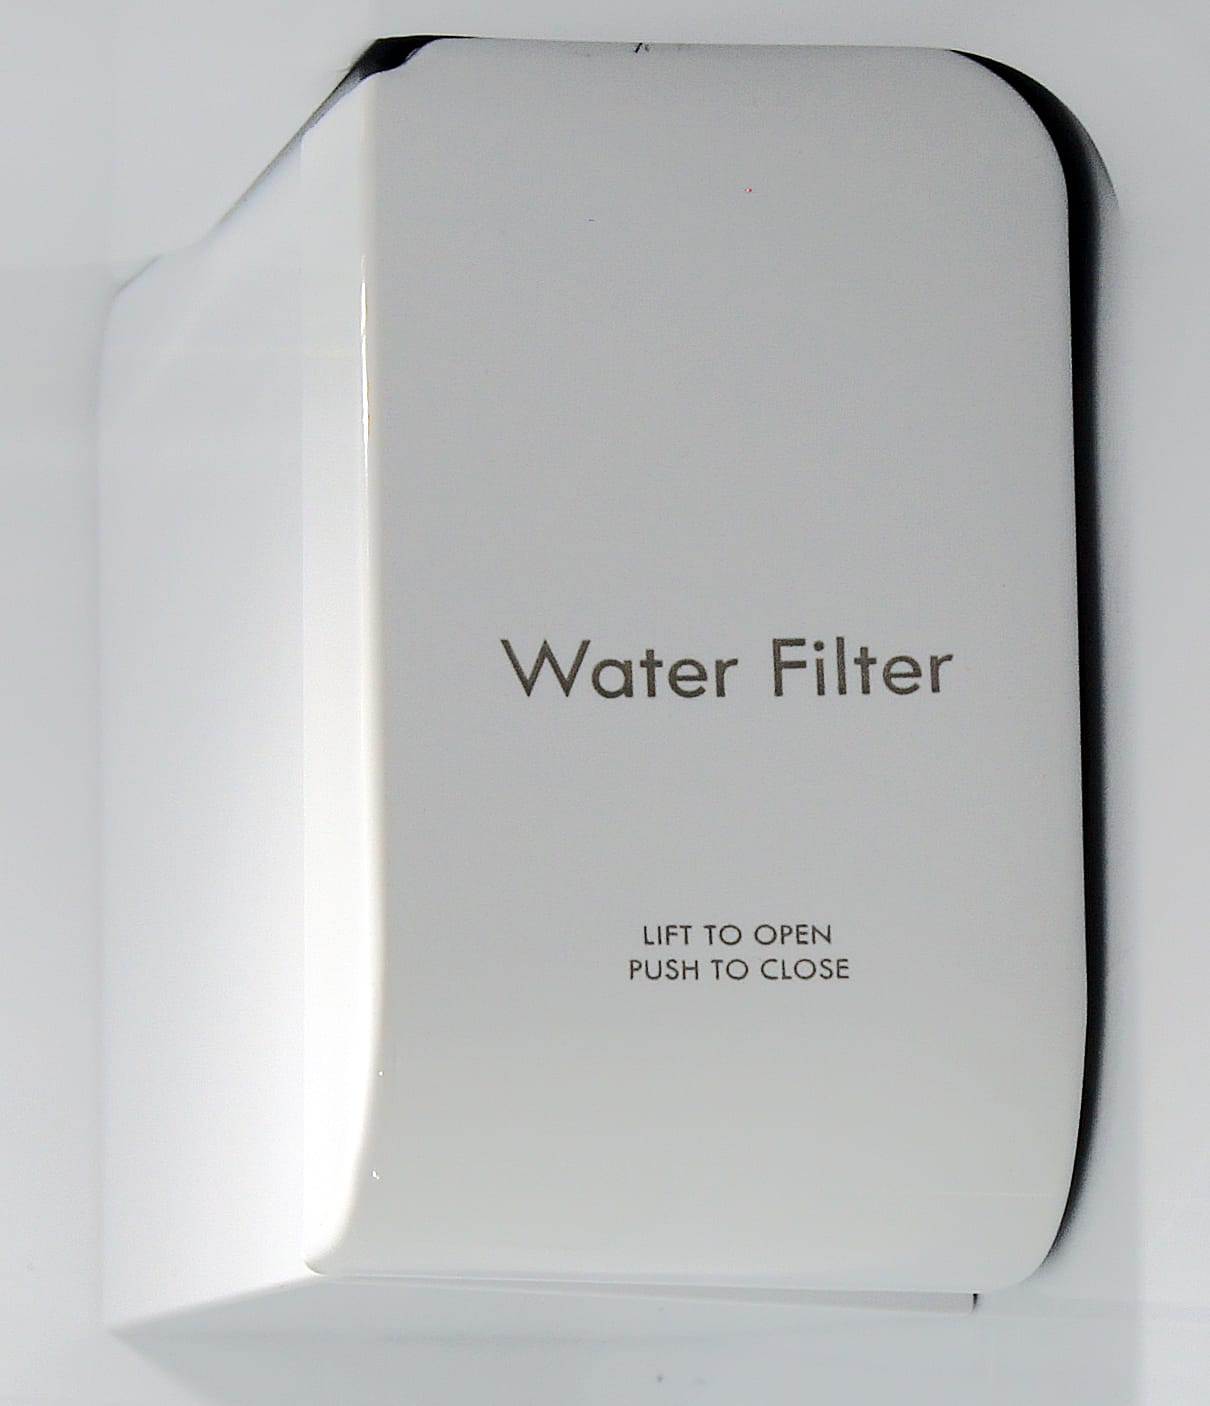 The Kenmore Elite 51162's water filter is easy to adjust and doesn't take up much room in the fridge.